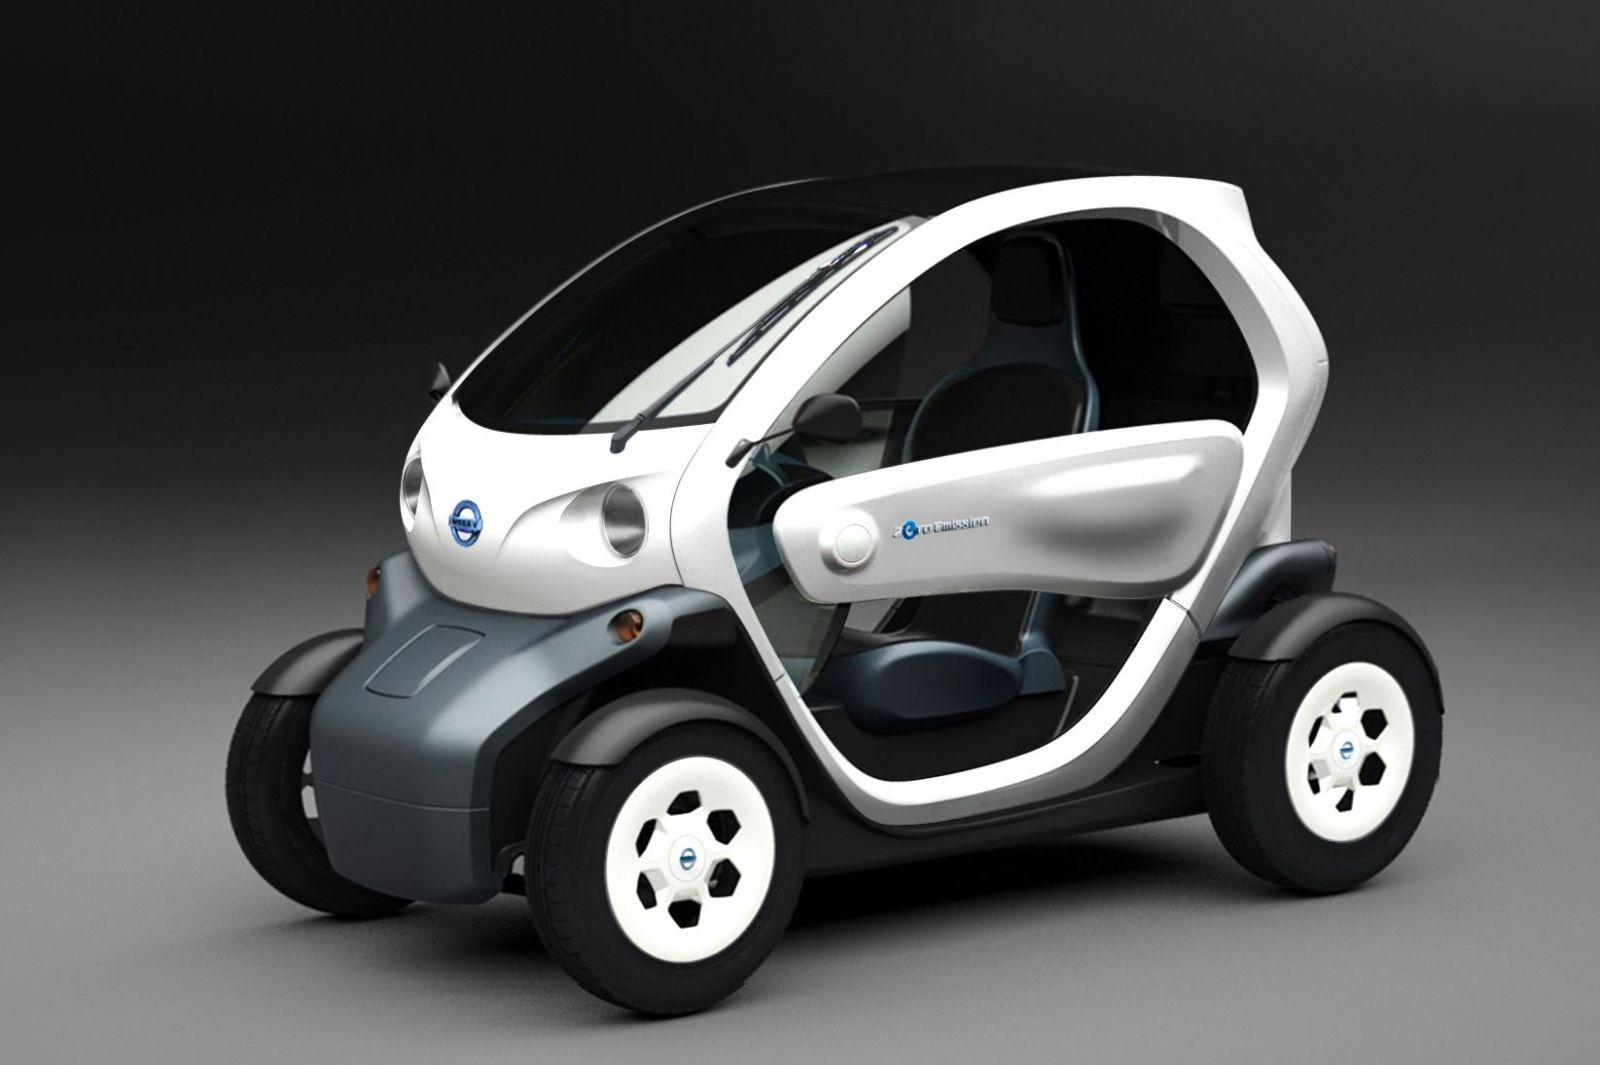 nissan clones the renault twizy ev photos reviews specifications. Black Bedroom Furniture Sets. Home Design Ideas